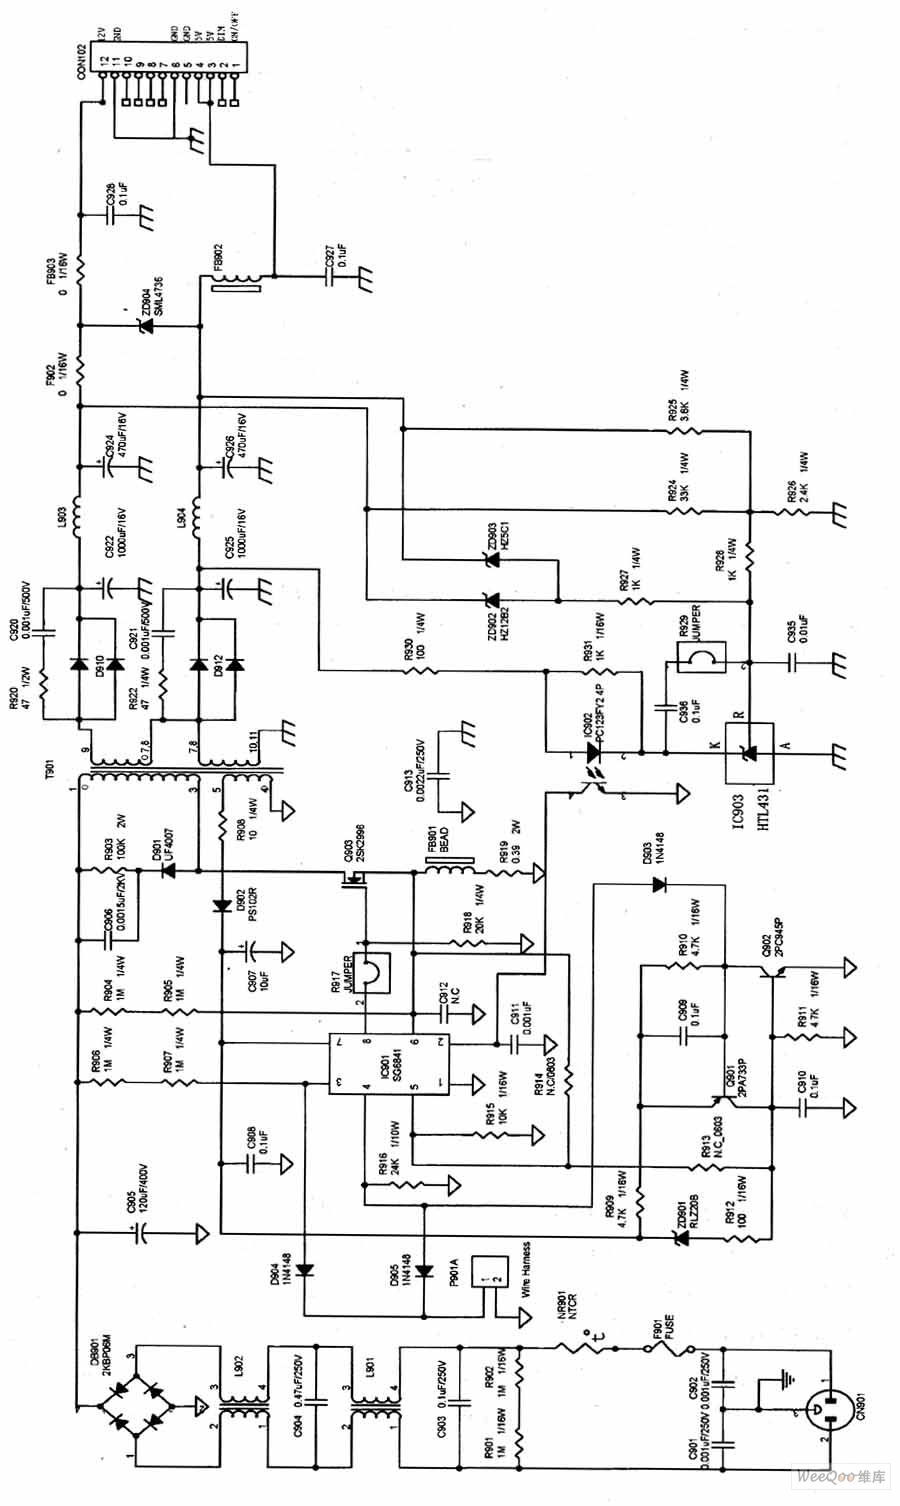 aoc lm729 lcd switch power supply circuit diagram under